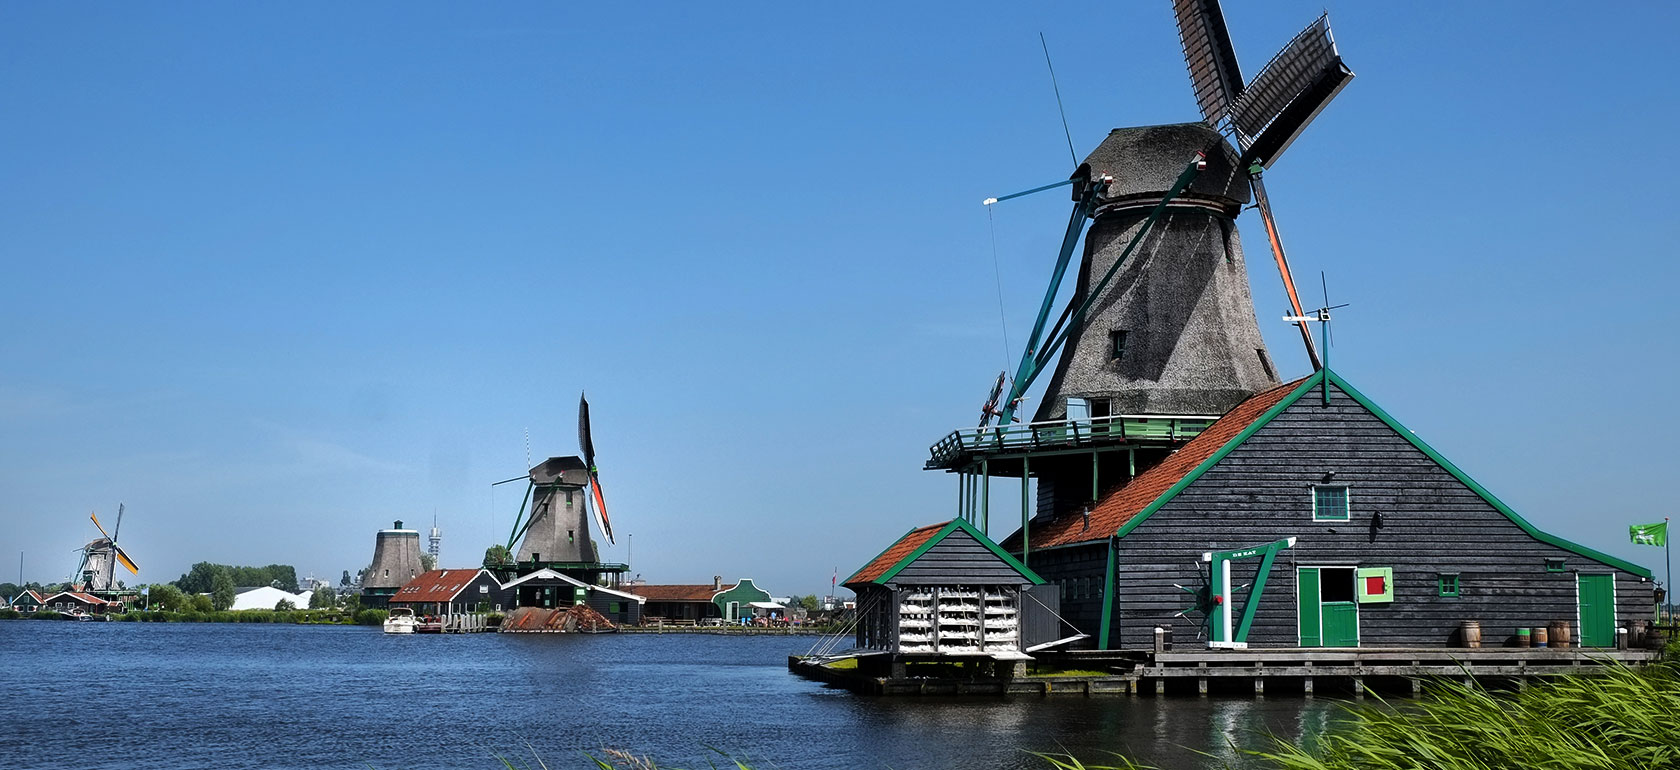 Day Trip to Keukenhof & Flowerfields, Volendam & Windmills (Small Group Tours)